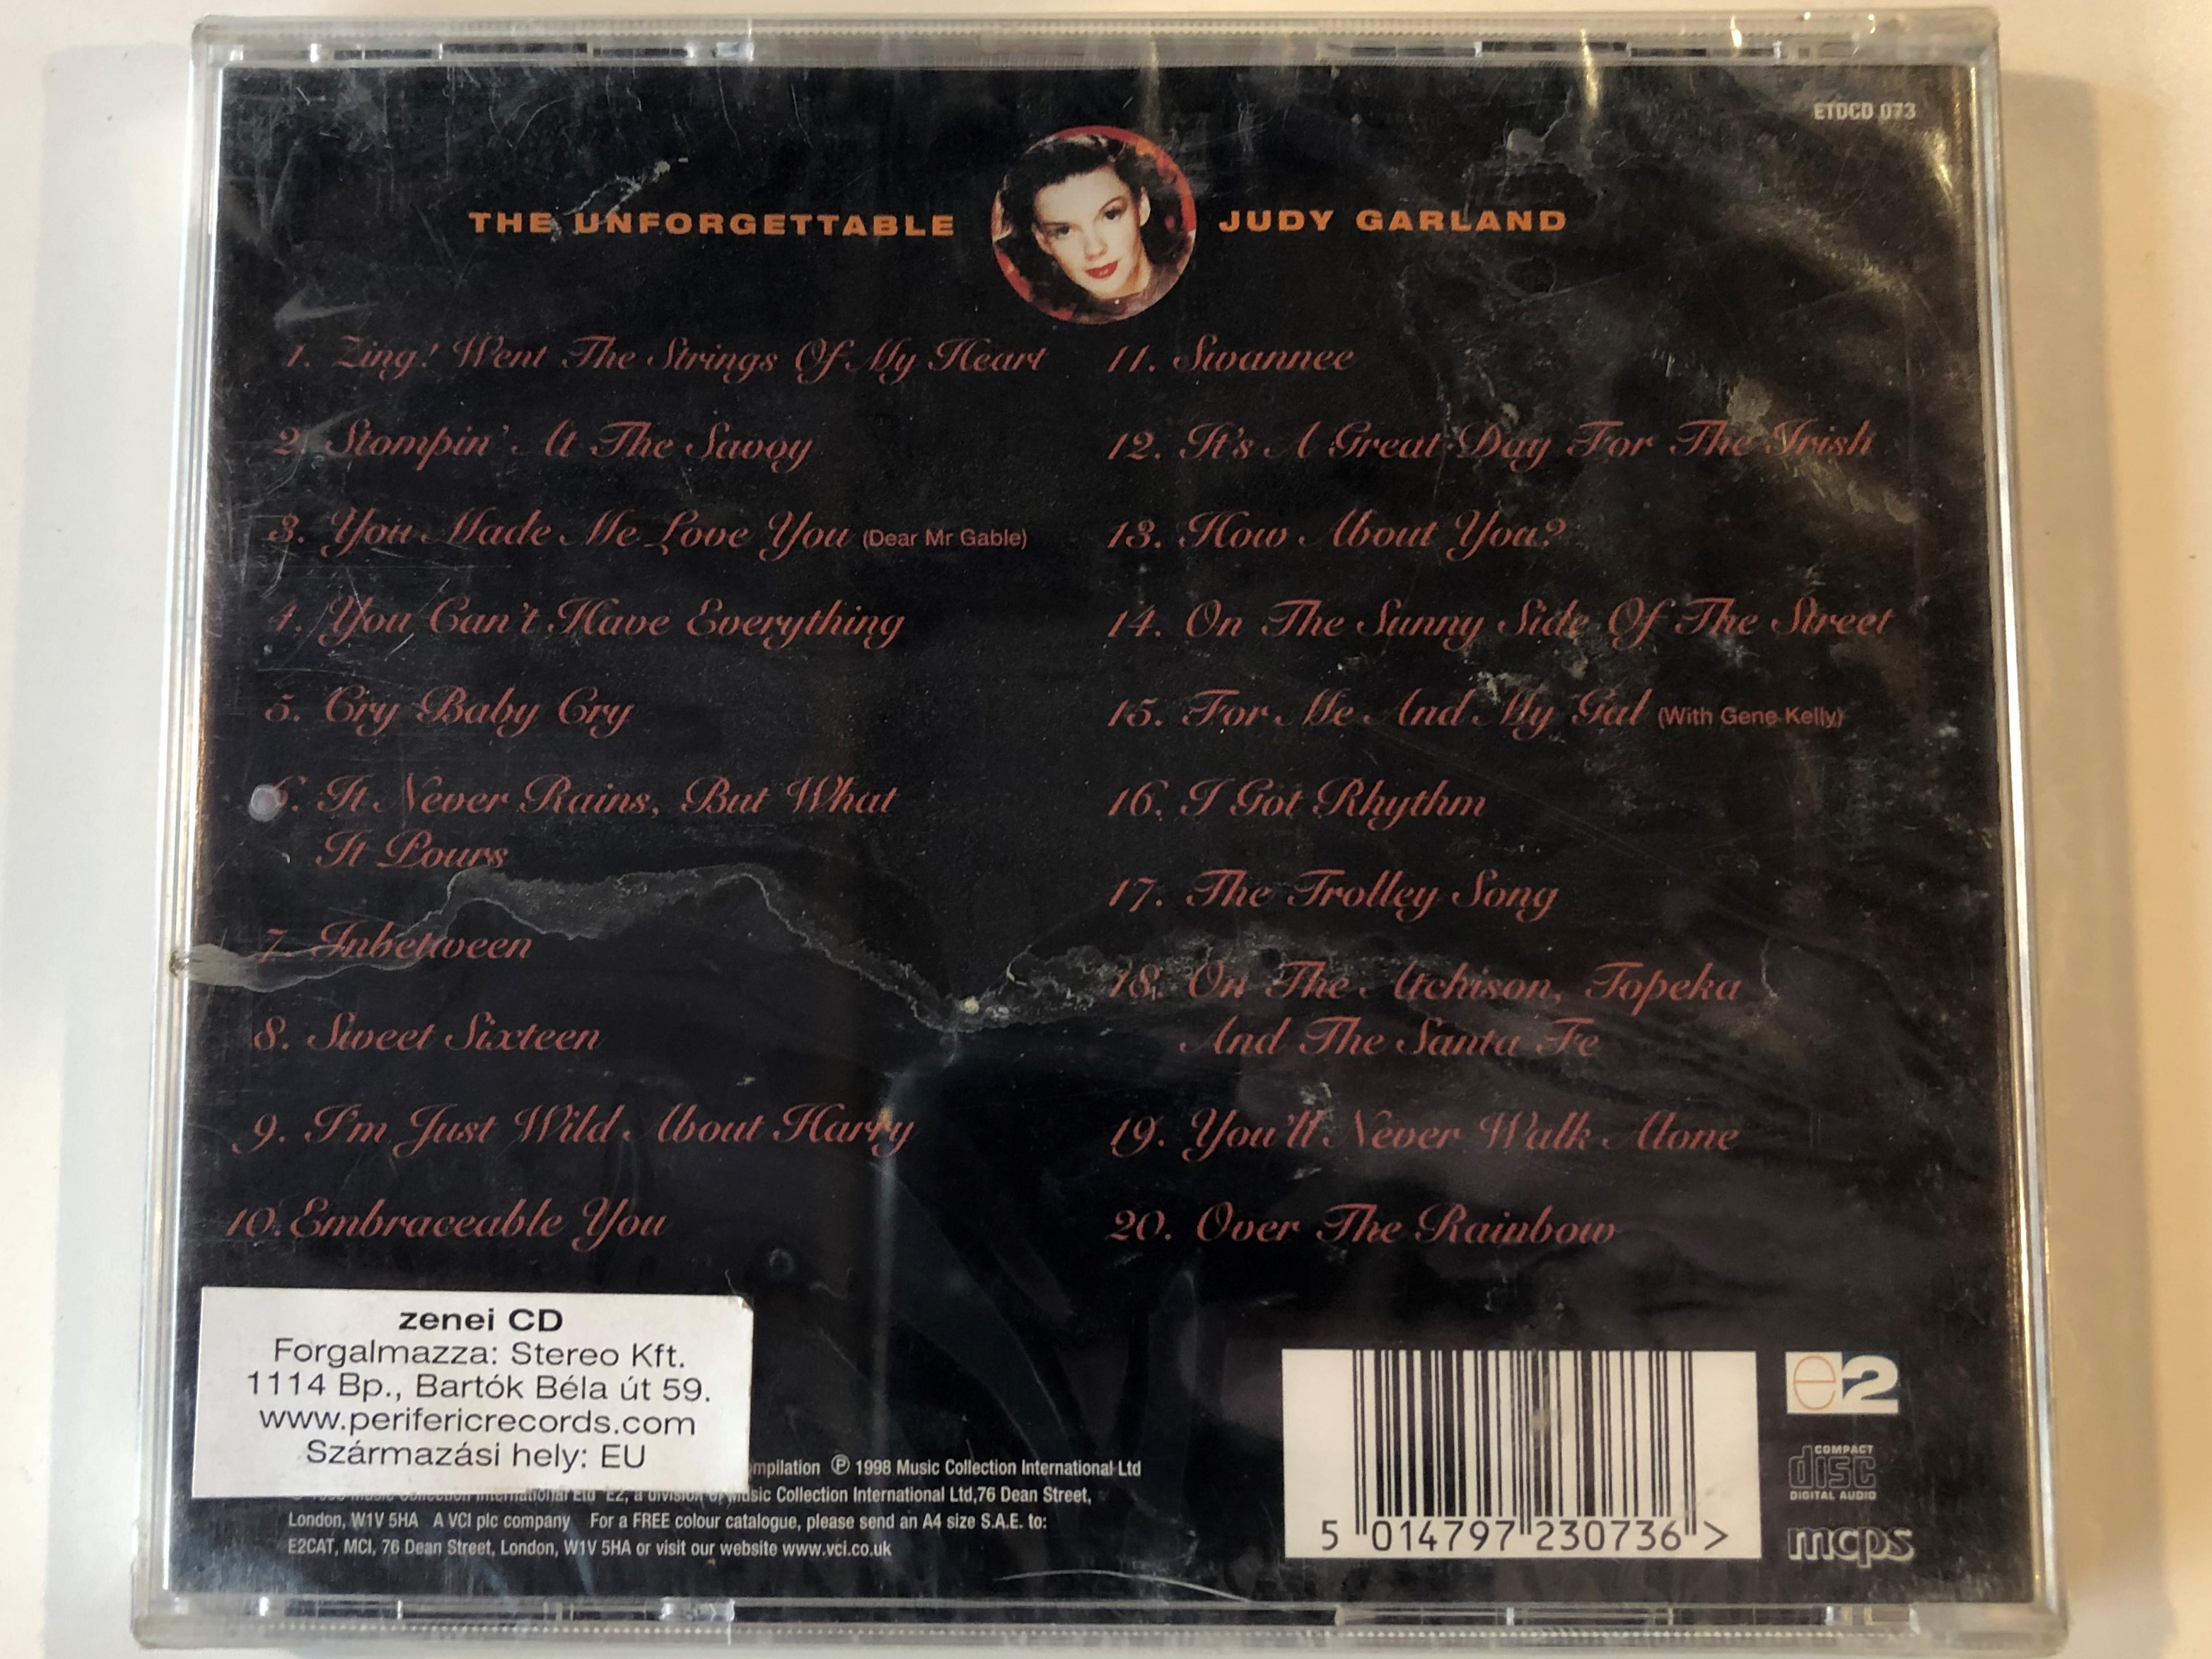 the-unforgettable-judy-garland-classics-from-the-stage-and-screen-e2-audio-cd-1998-etdcd-073-2-.jpg